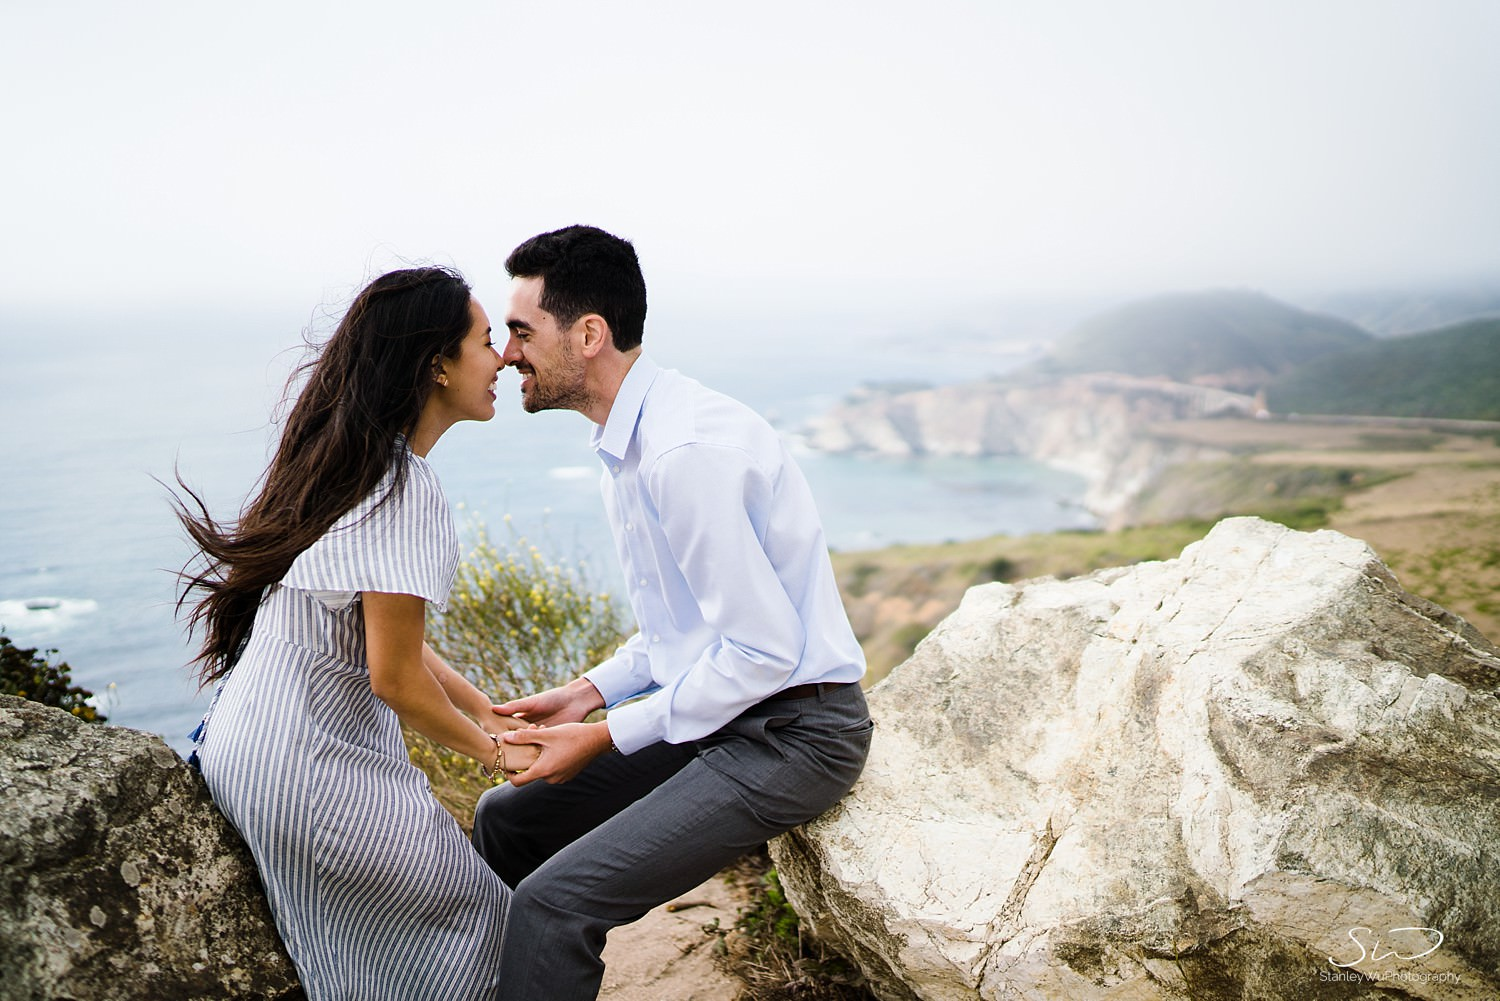 big-sur-travel-adventure-engagement-session_0026.jpg